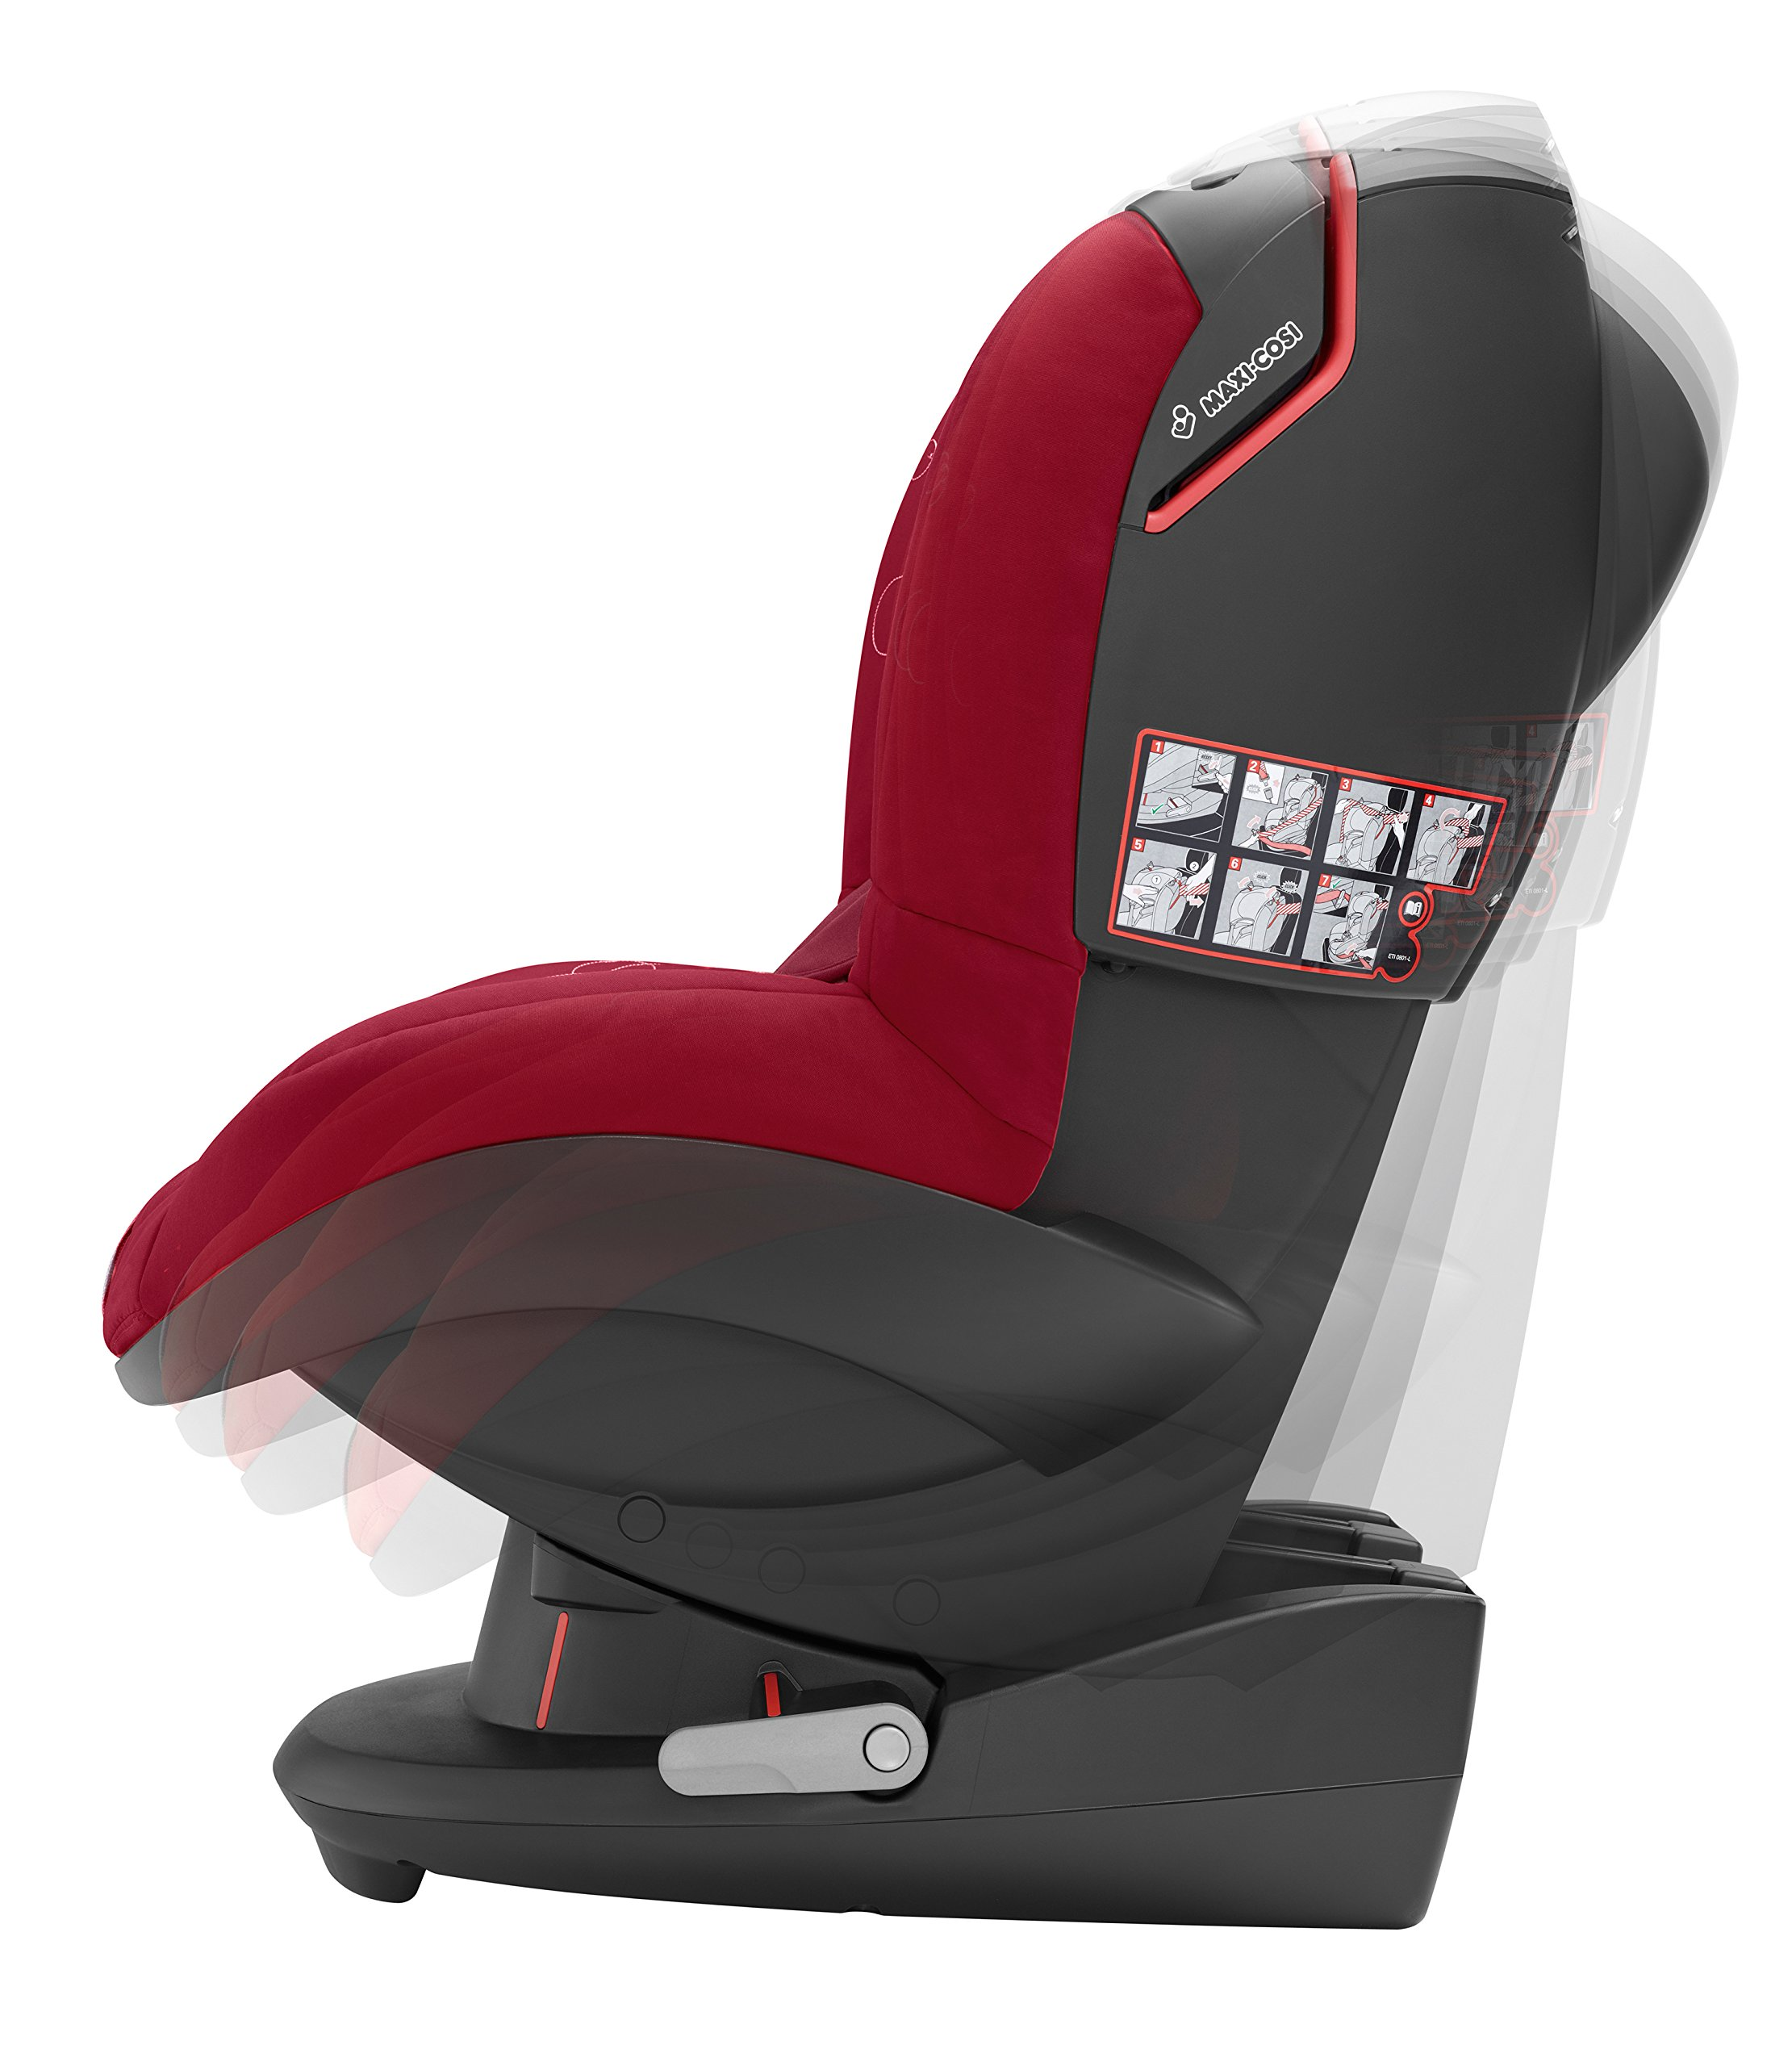 Maxi-Cosi Tobi Toddler Car Seat Group 1, Forward-Facing Reclining Car Seat, 9 Months-4 Years, 9-18 kg, Denim Hearts Maxi-Cosi Forward facing, suitable for toddler of weight 9-18 kg Easy to install with a three-point safety belt Intuitive and easy to read belt routing 4